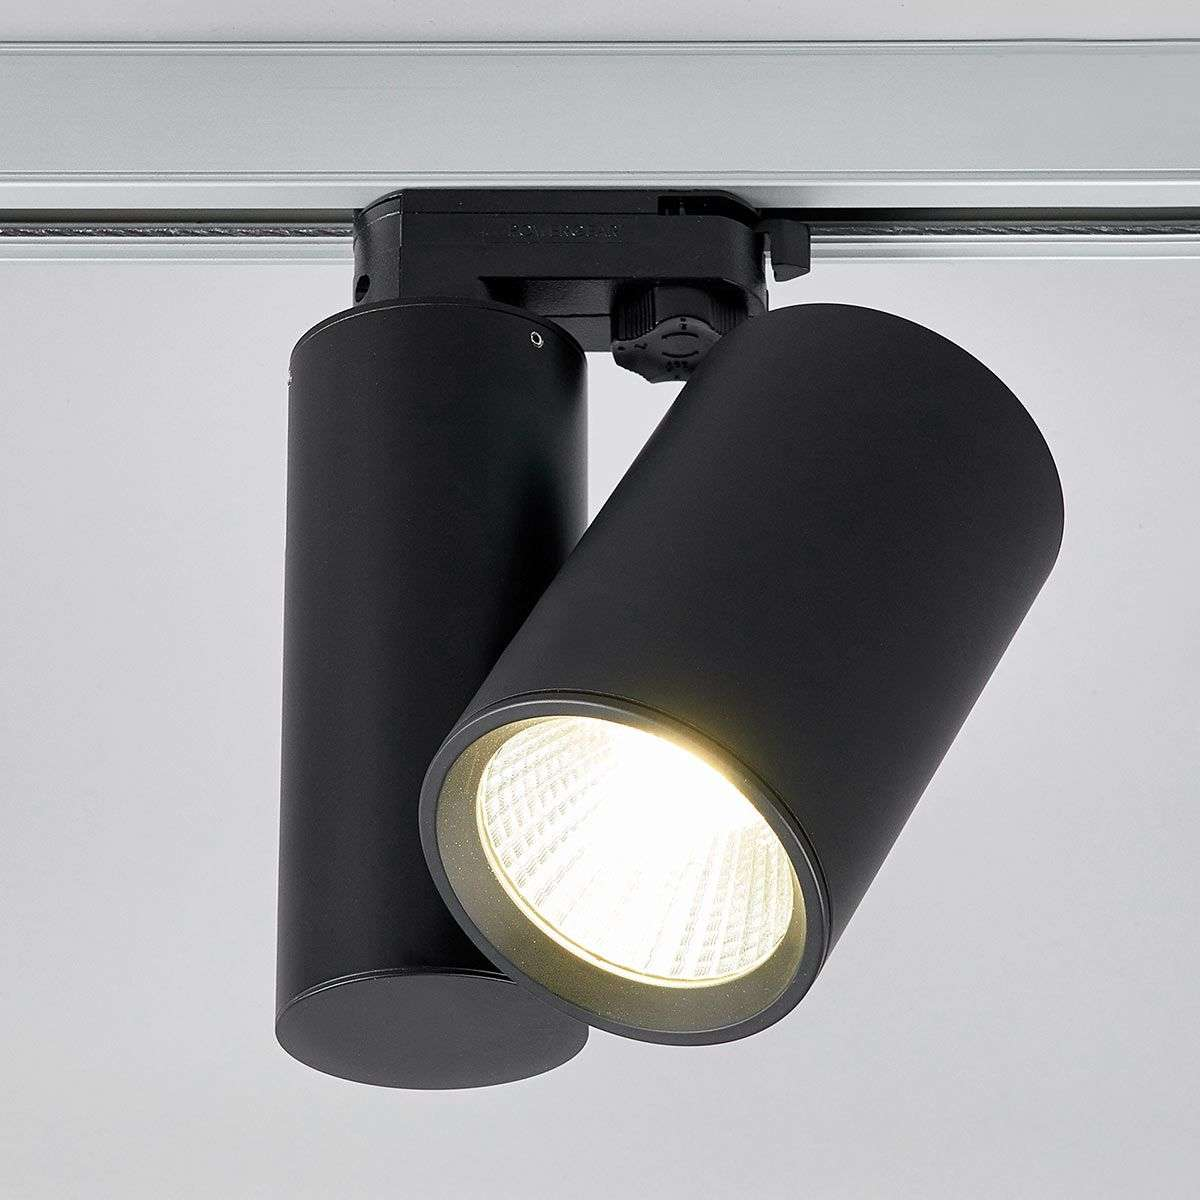 Black Track Lighting Uk: Giol Black LED Spotlight For Track Lighting System